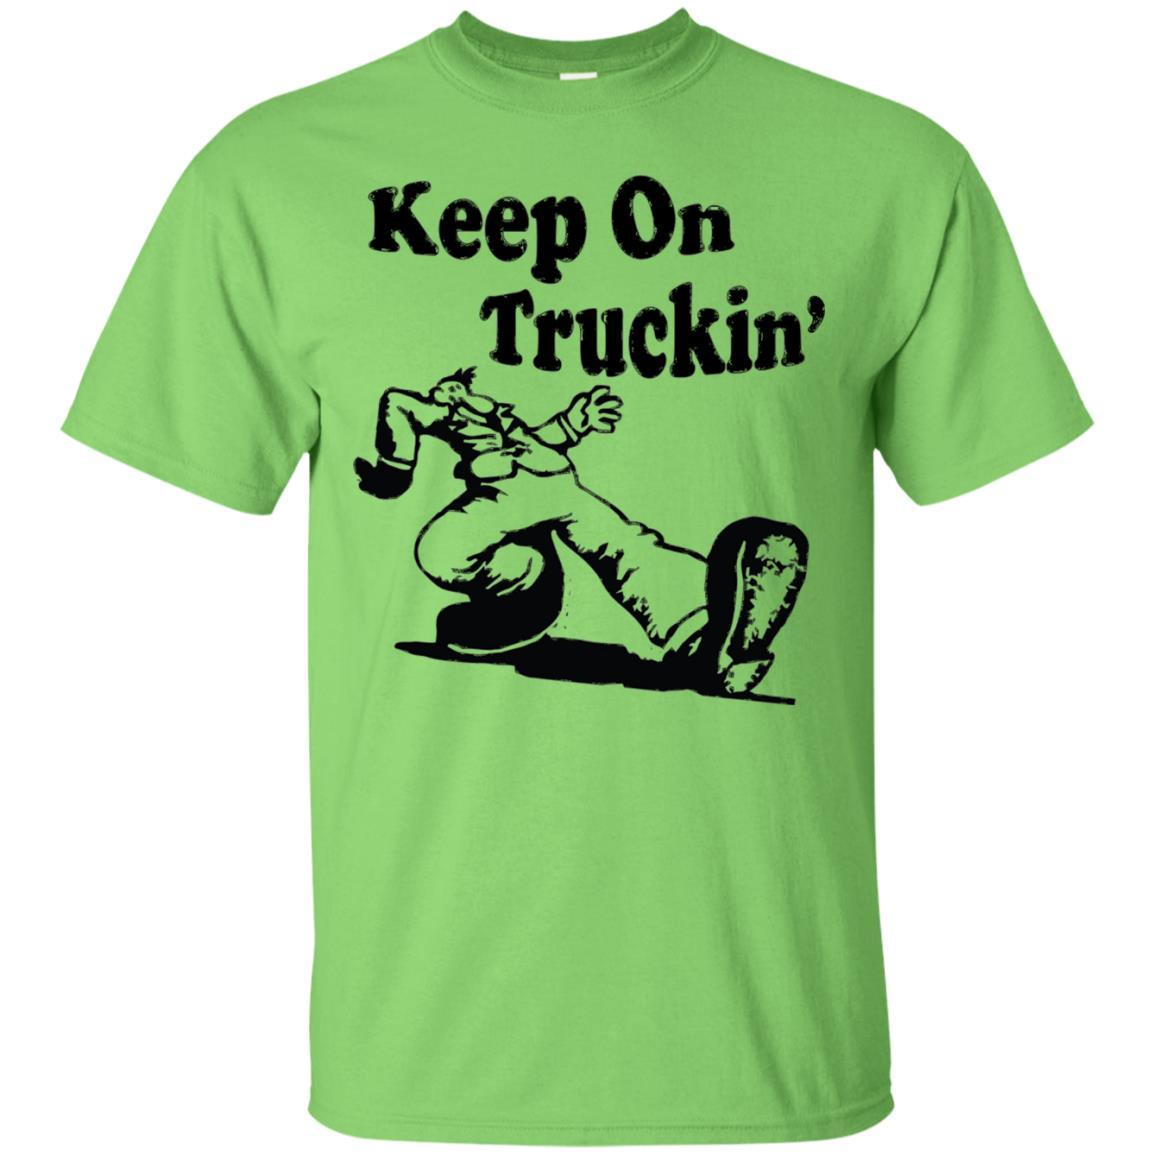 Iconic Keep On Truckin' Tshirt Lime / 5XL